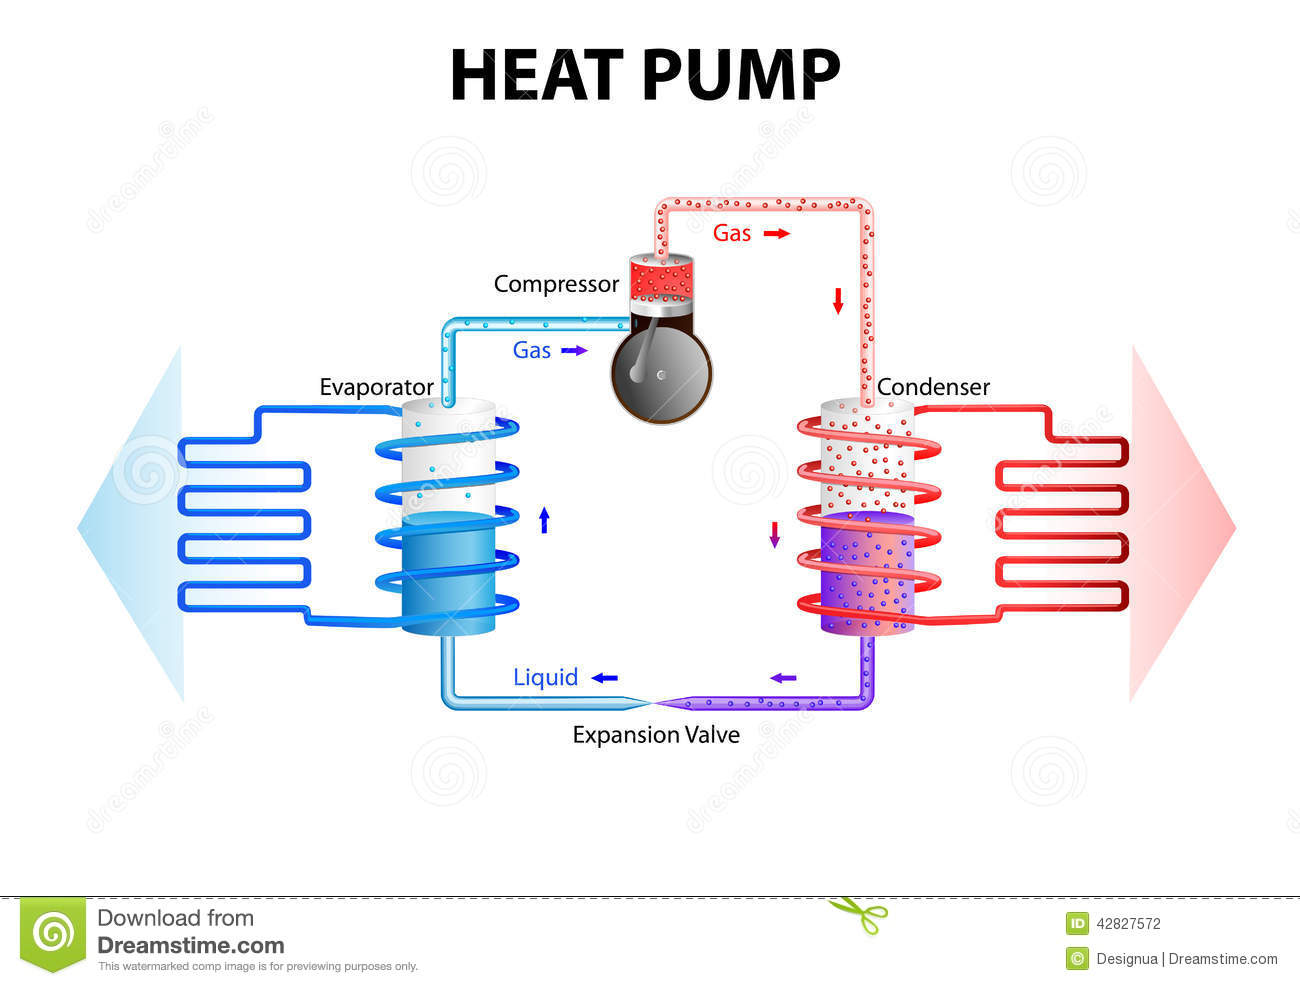 heat pump cooling system works extracting energy stored ground water converts building heating pumps 42827572 how a air conditioner works grihon com ac, coolers & devices how does air conditioning work diagram at mifinder.co